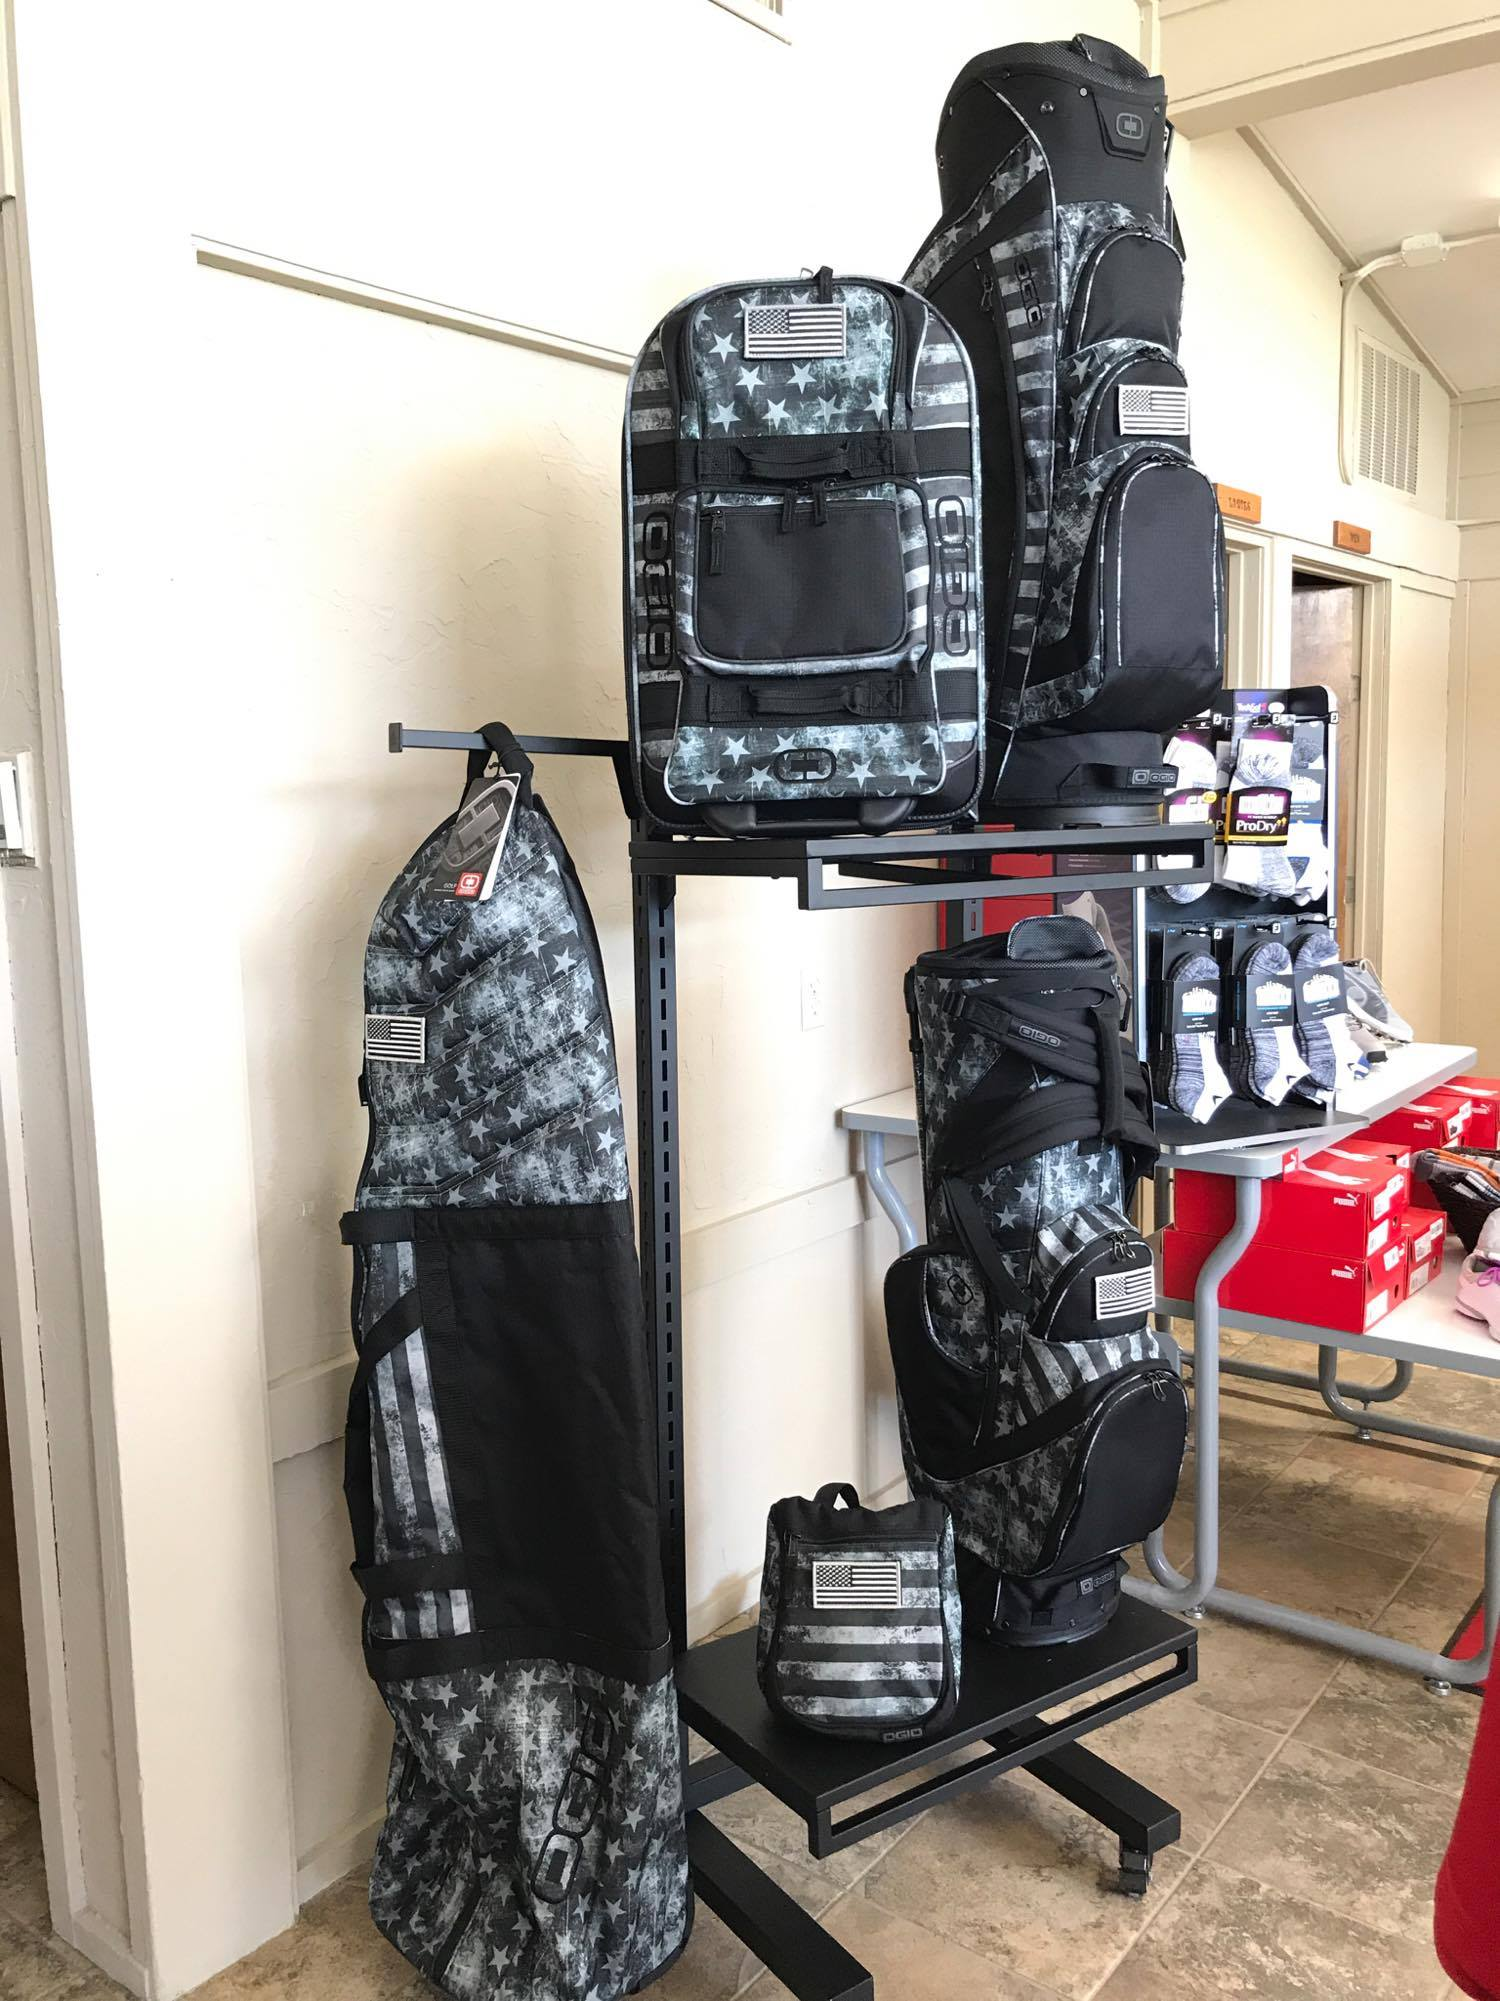 The newest bags in stock!